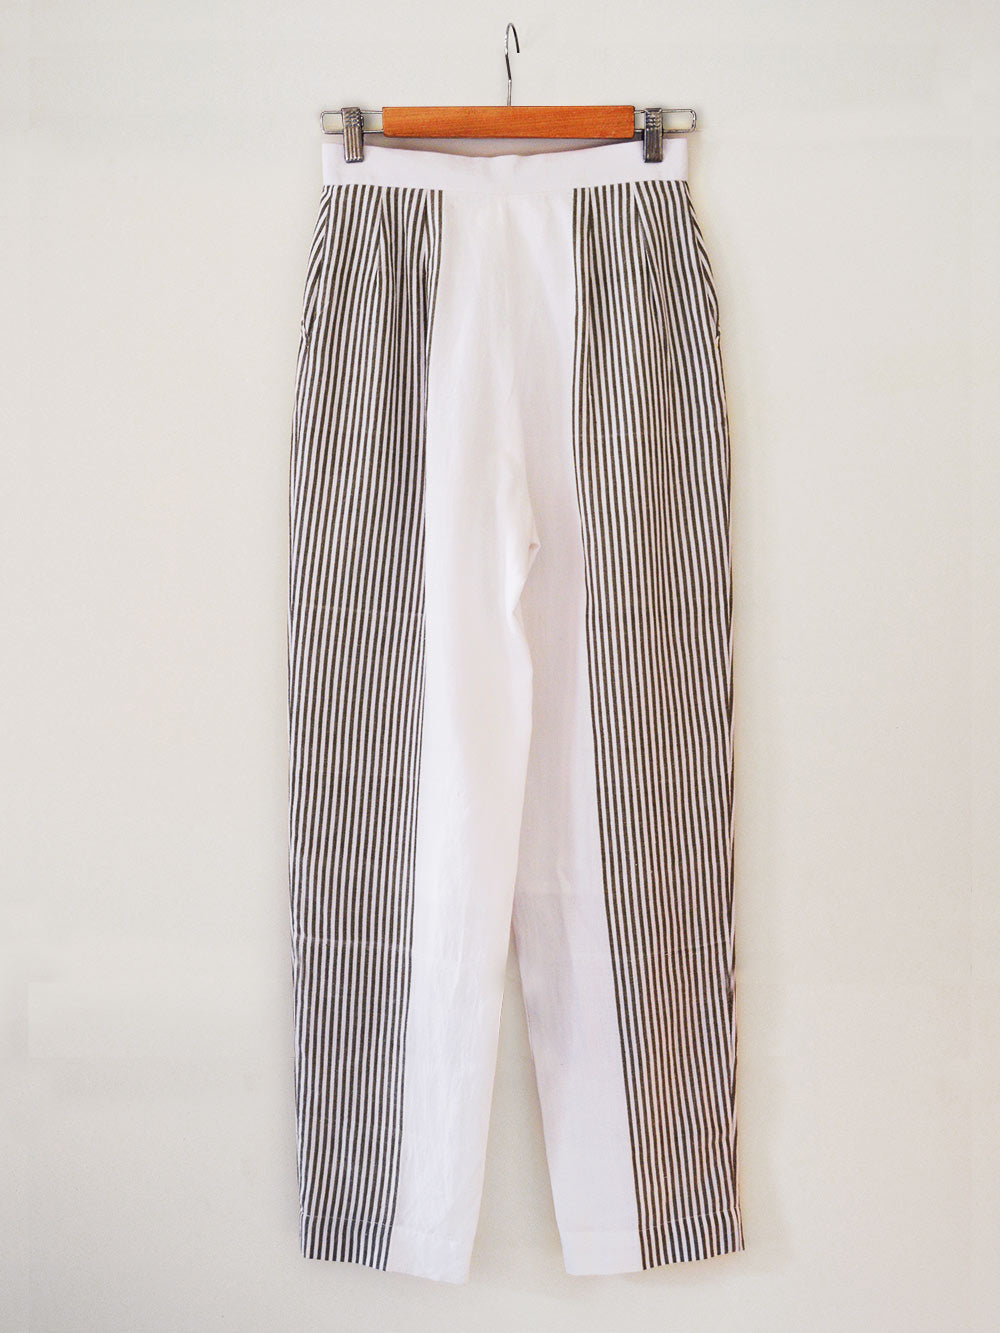 Hand woven Straight Pants with white and olive stripes, 100% cotton, designed by Khumanthem Atelier